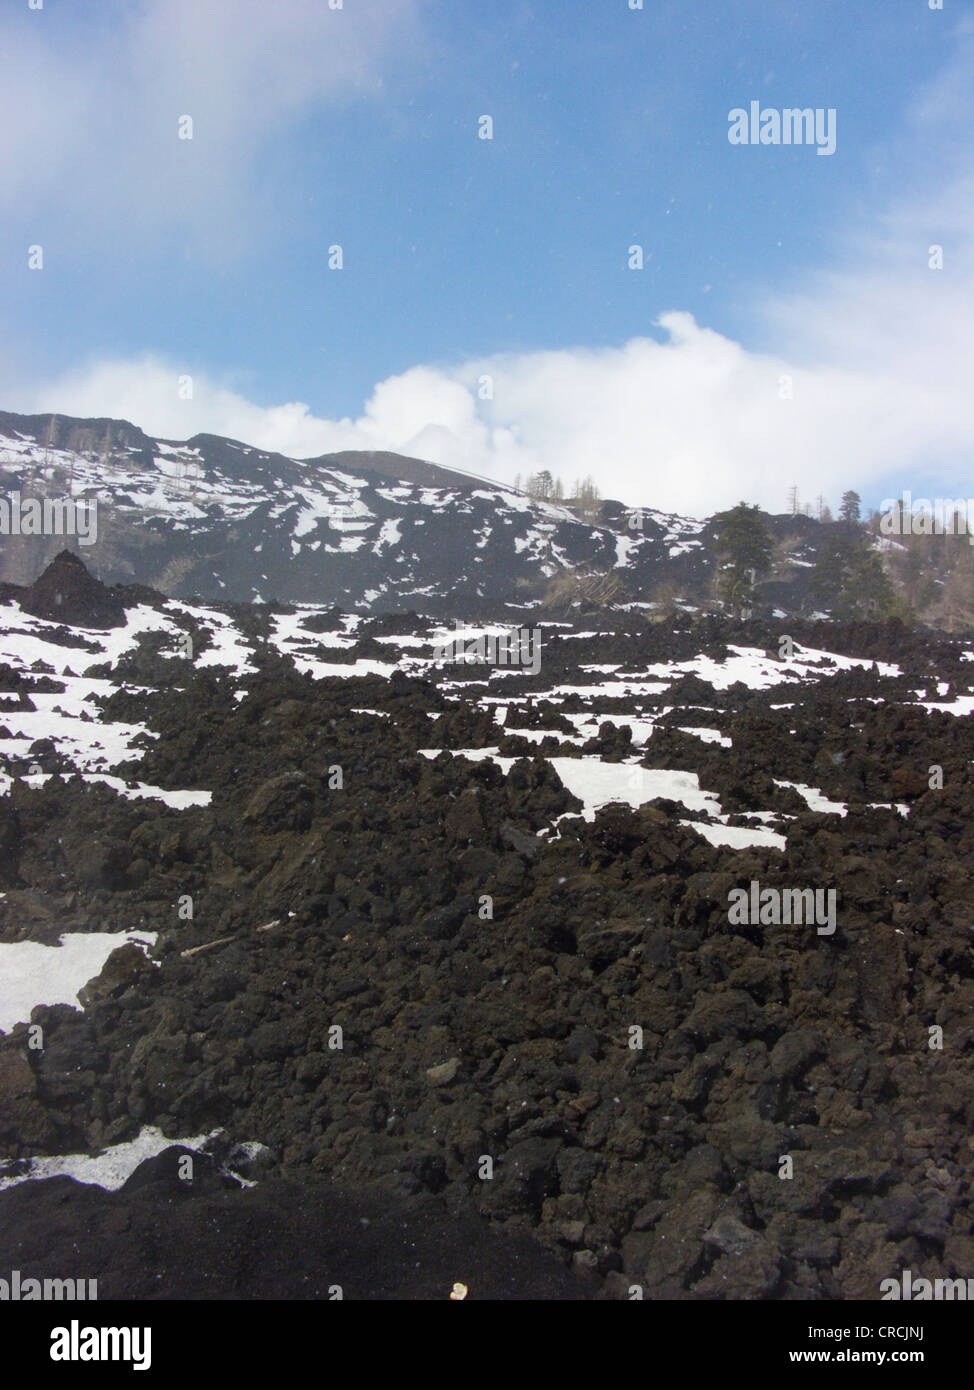 lava field with snow at the North of Mount Etna, Italy, Sicilia Stock Photo